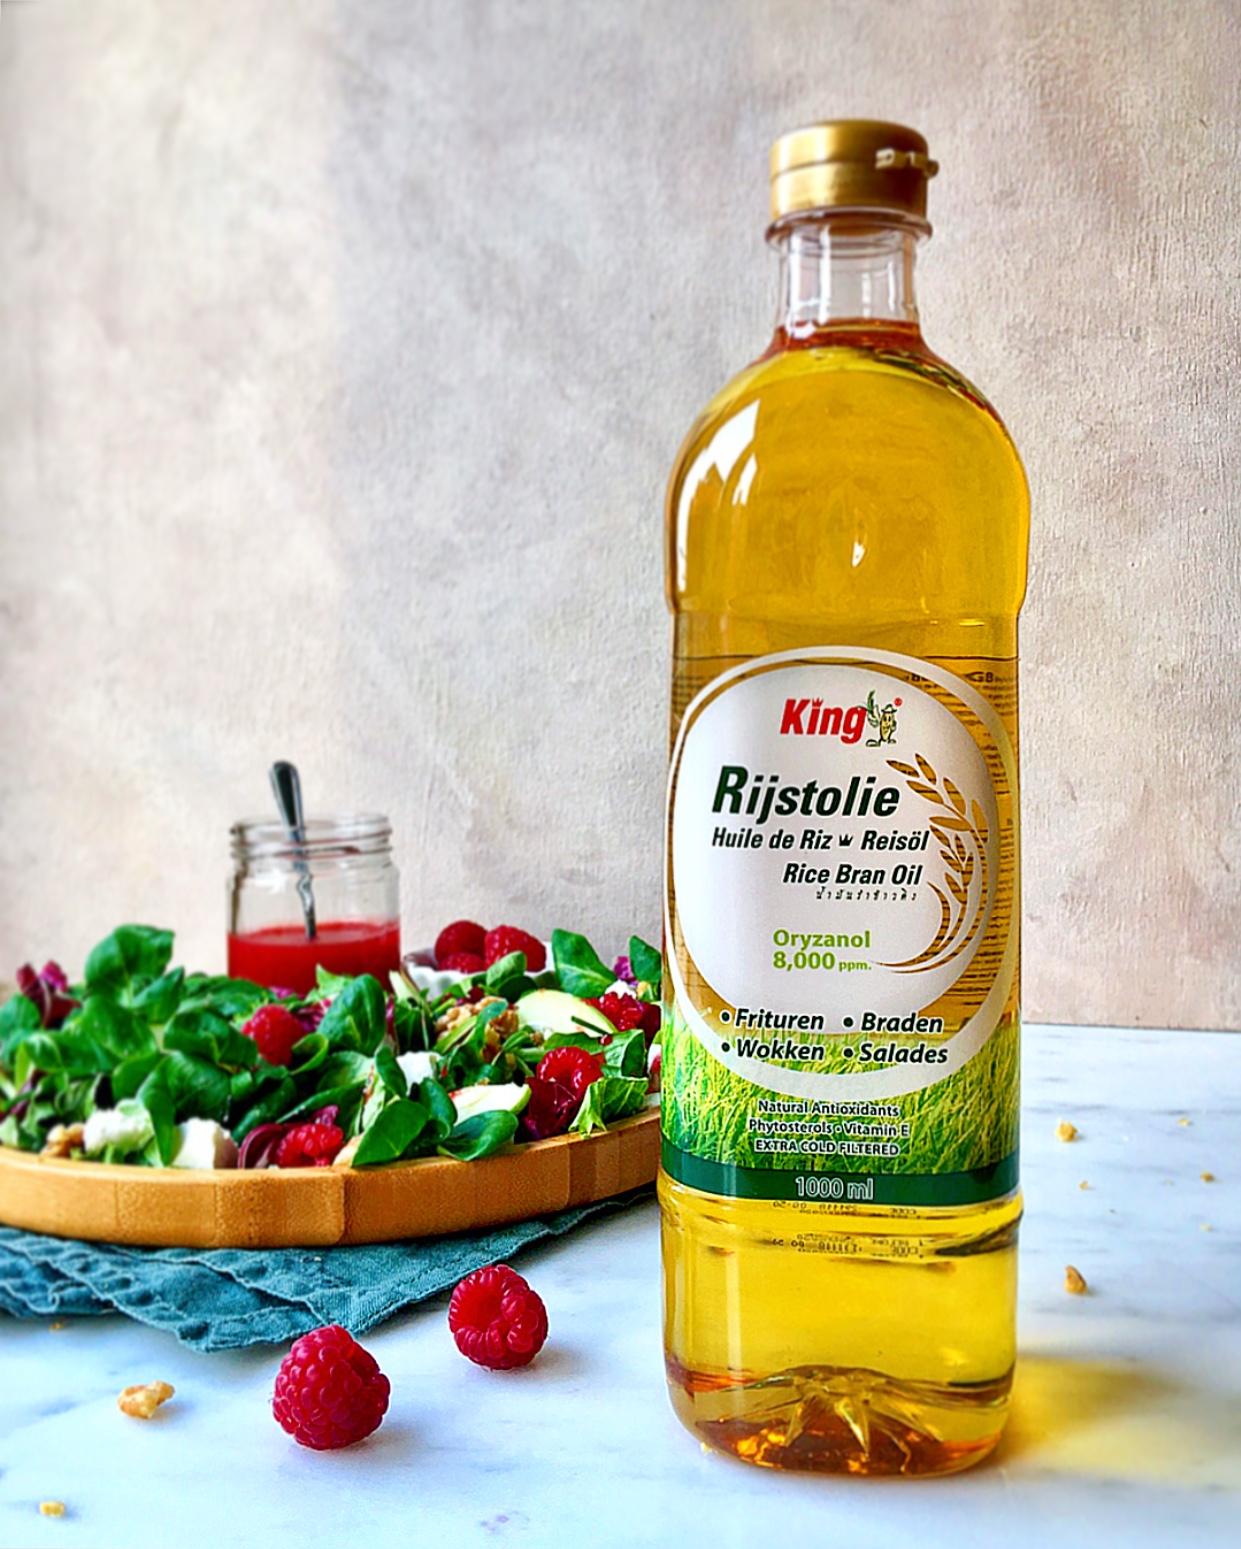 The rice oil I used was from King Rijstolie and works perfect in a fruity dressing.